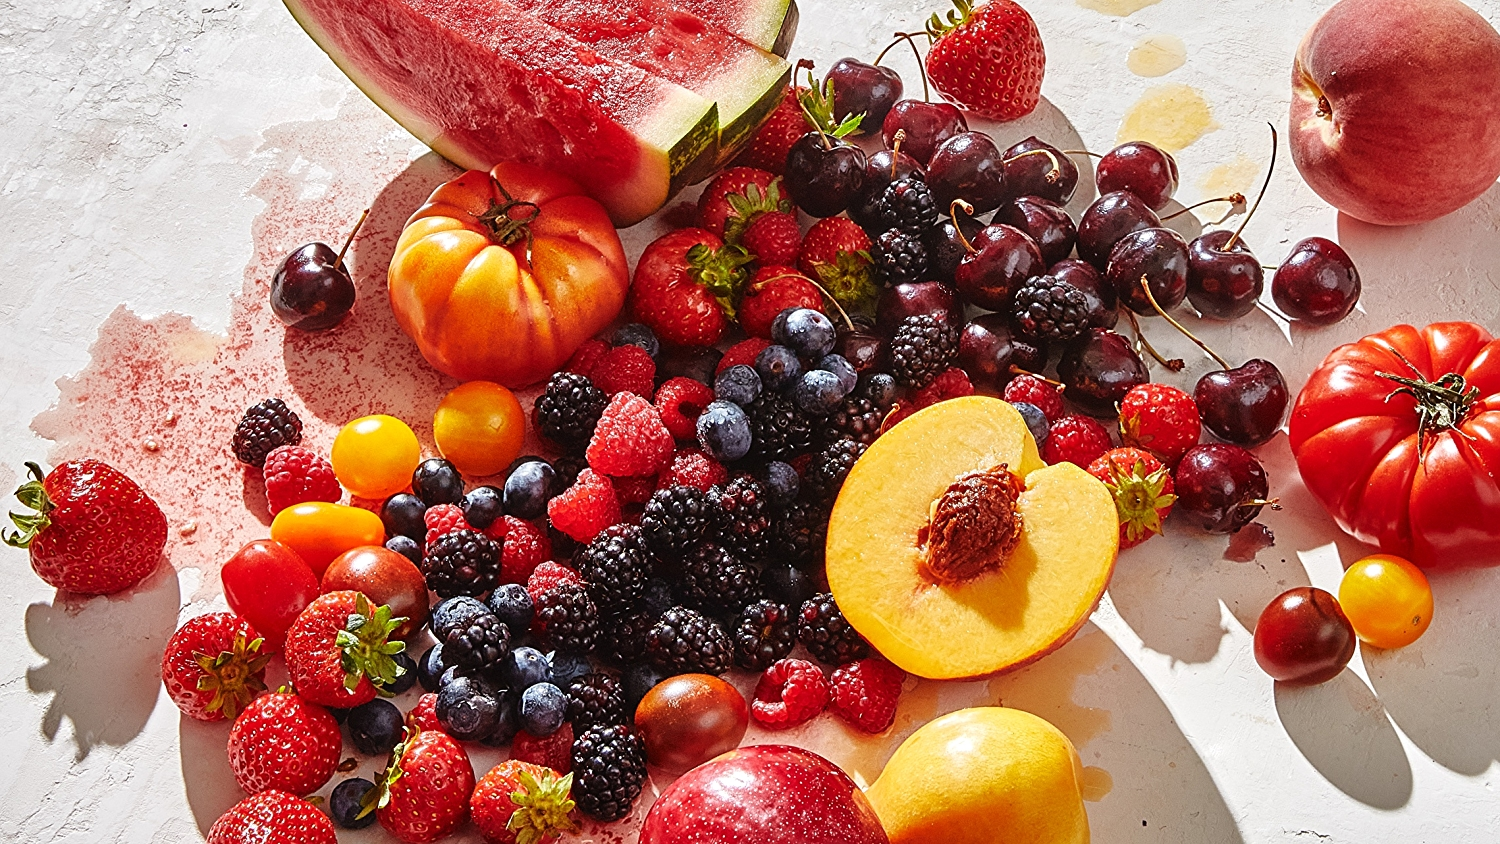 group of summer fruit: strawberries, peaches, blueberries, raspberries, blackberries, tomatoes and cherries